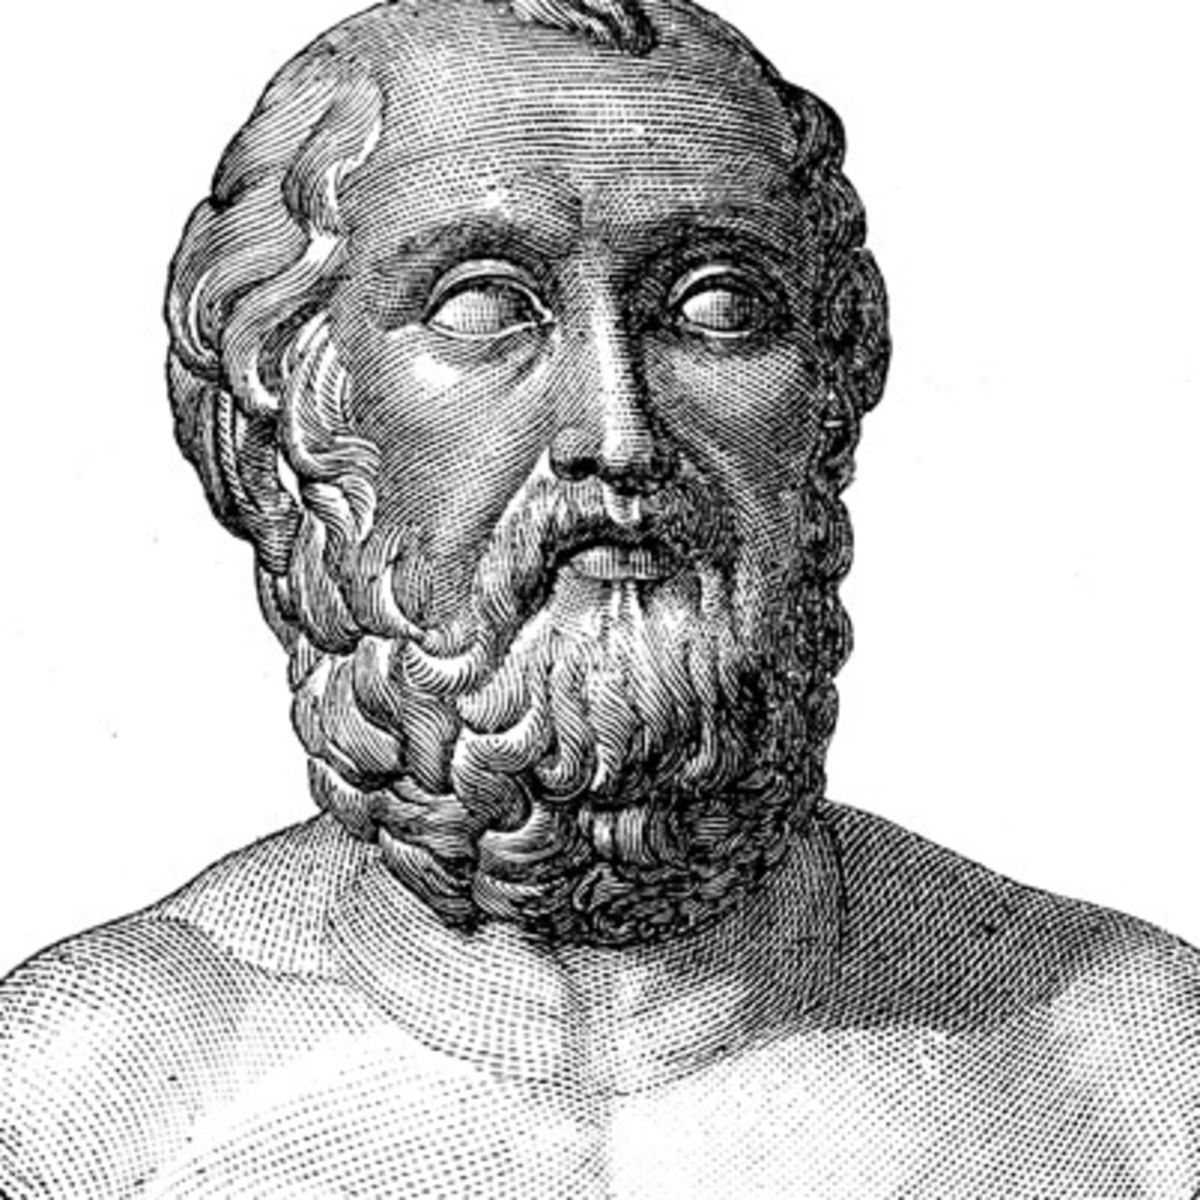 a biography of plato the greek philosopher and mathematician Learn more at biographycom socrates was a greek philosopher and the main source of western thought ancient greek philosopher plato founded the academy and is the author of philosophical works of unparalleled influence in western thought.